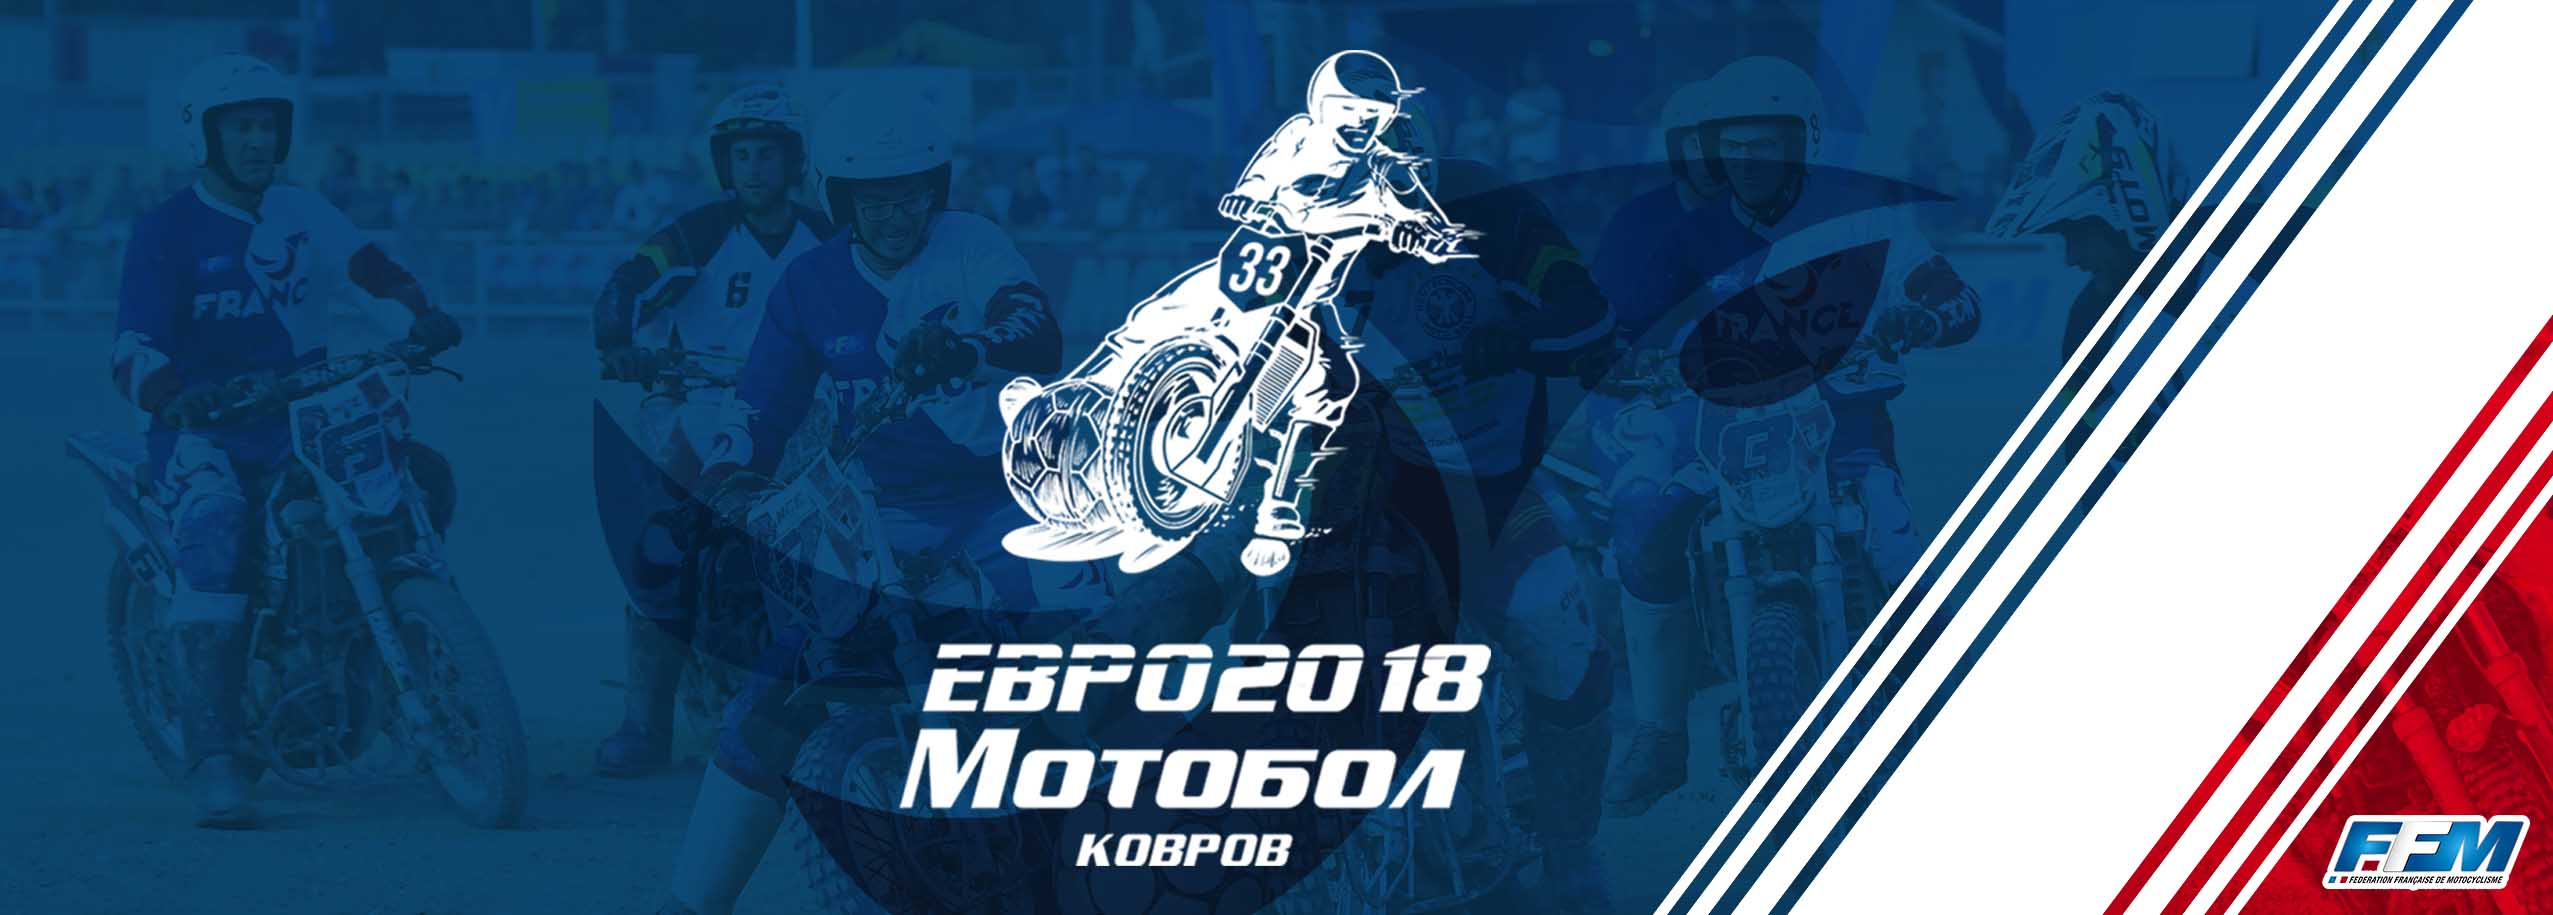 Moto-ball : Championnat d'Europe des Nations 2018 en Russie